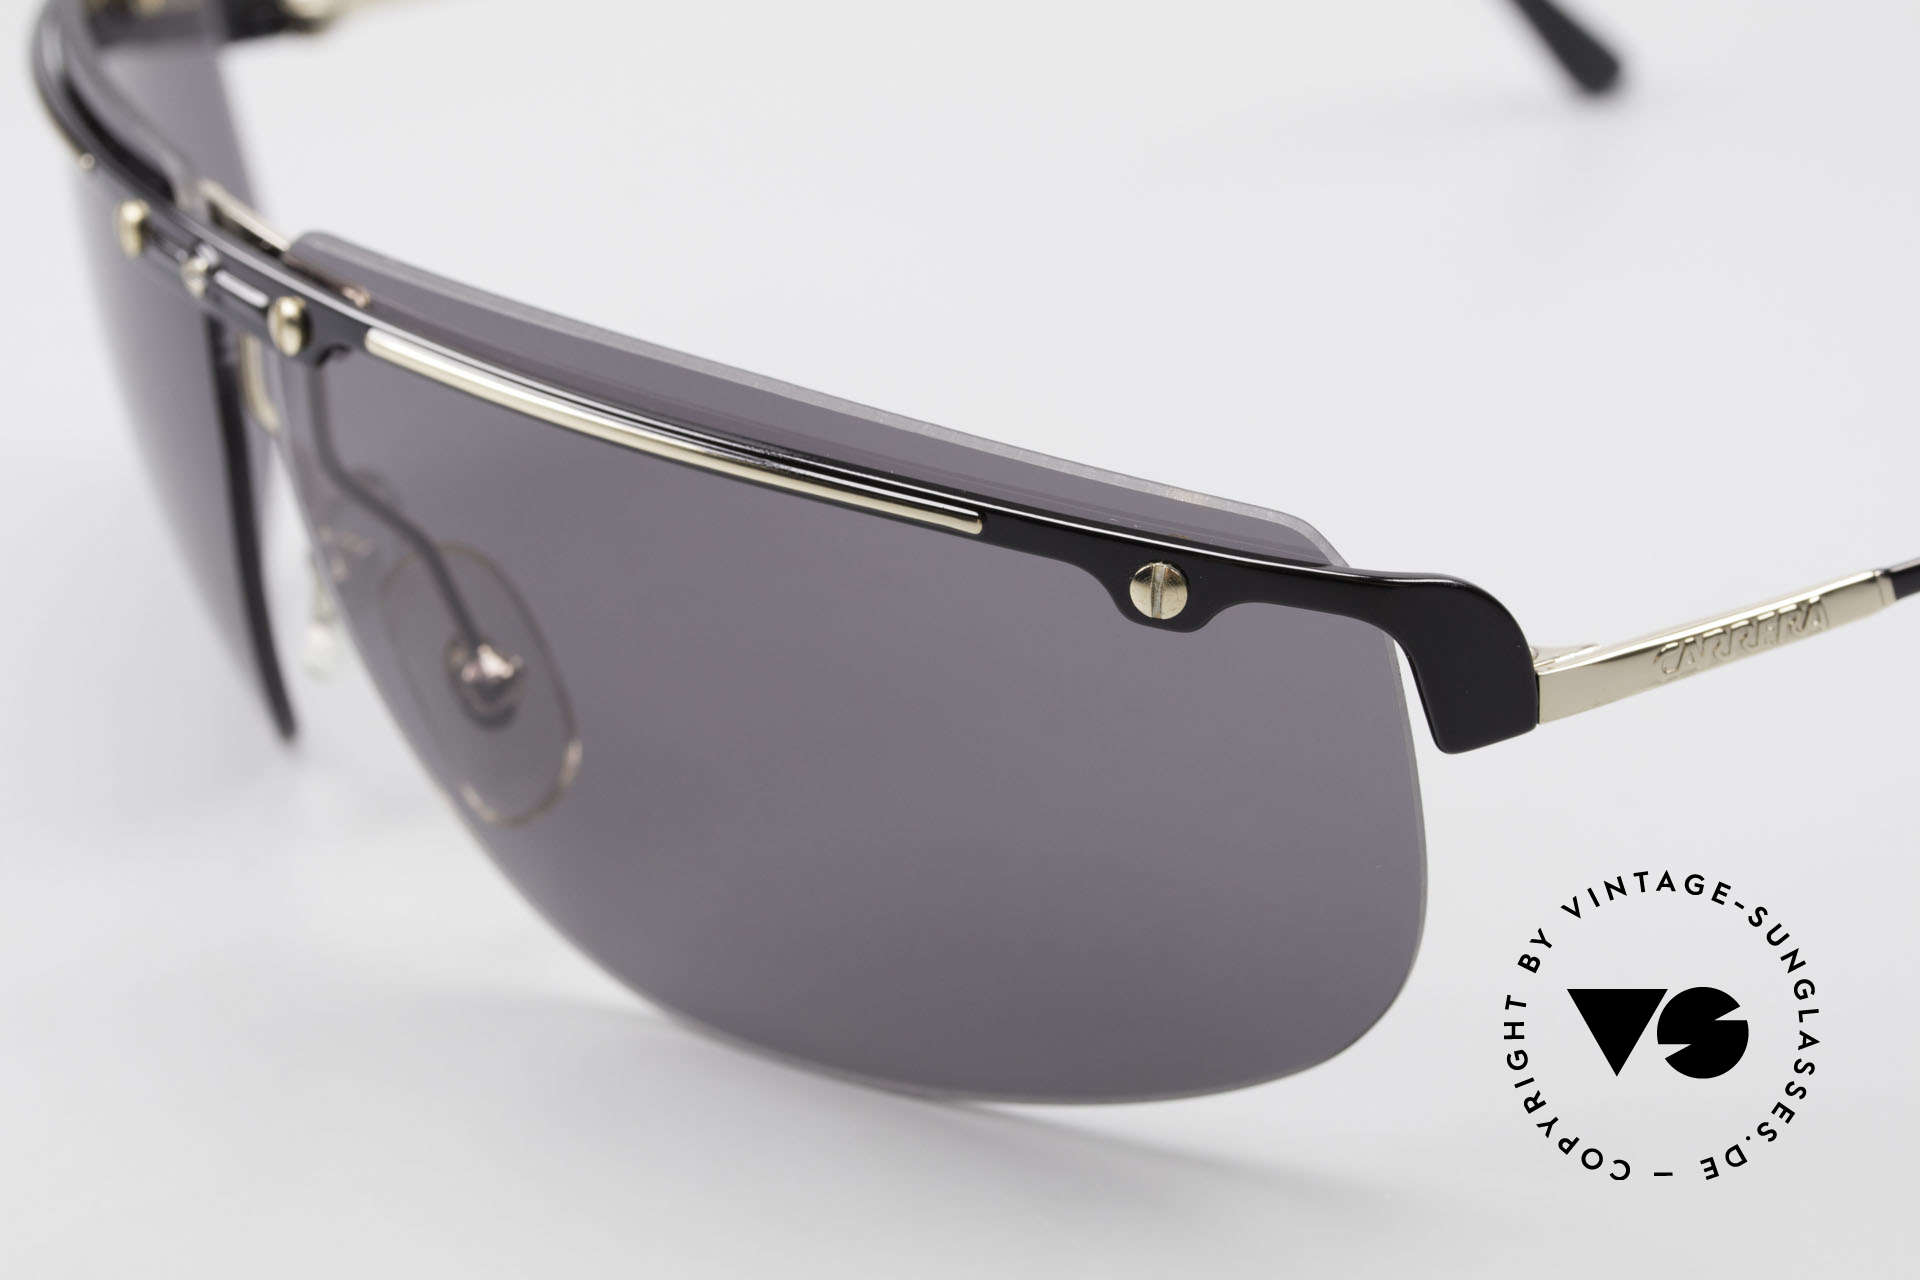 Carrera 5420 90s Wrap Around Sportsglasses, functional shades and a stylish accessory likewise, Made for Men